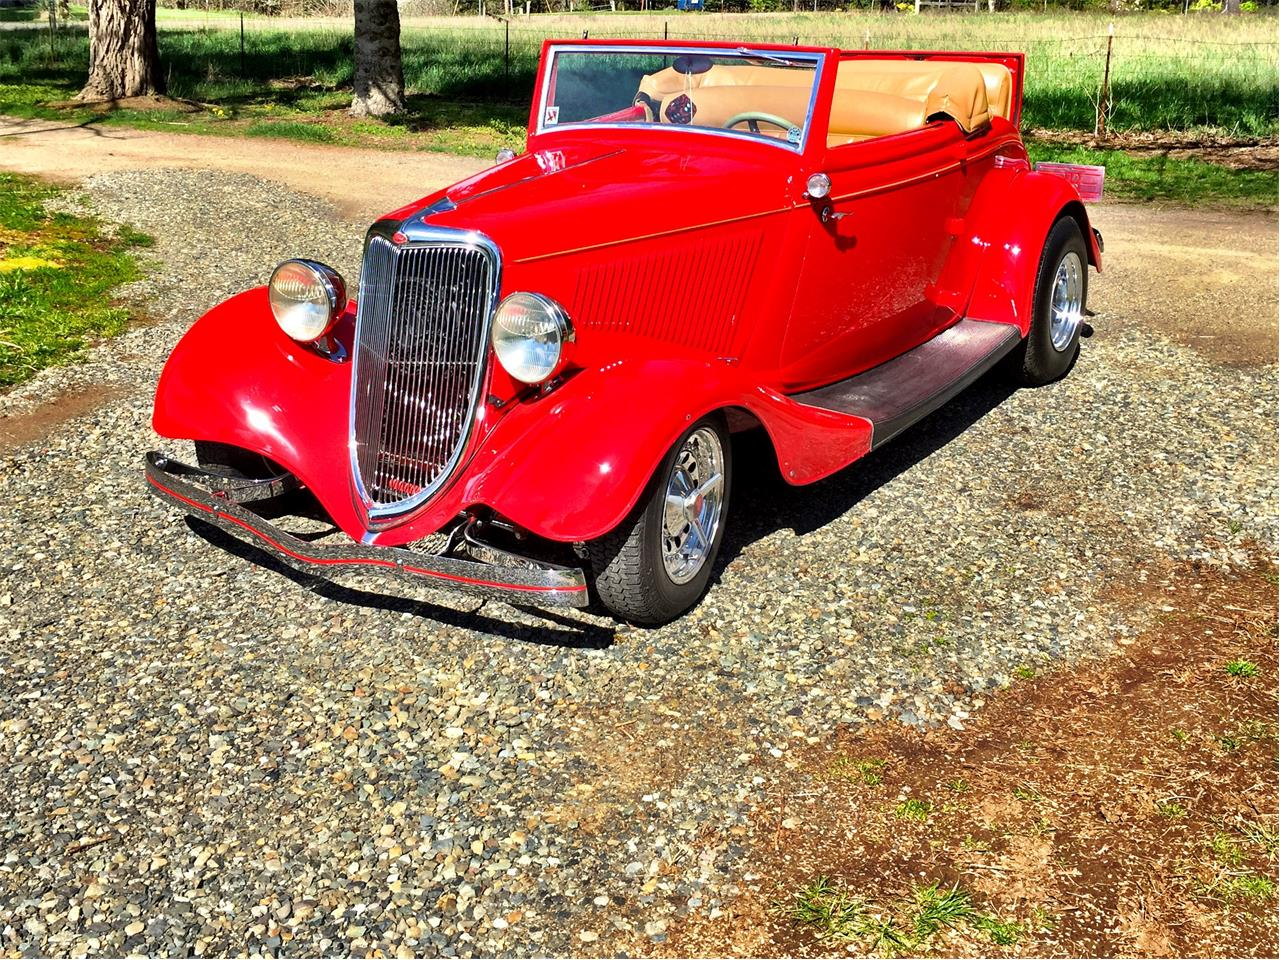 Large Picture of 1934 Ford Cabriolet located in Washington - $60,000.00 - MRLT